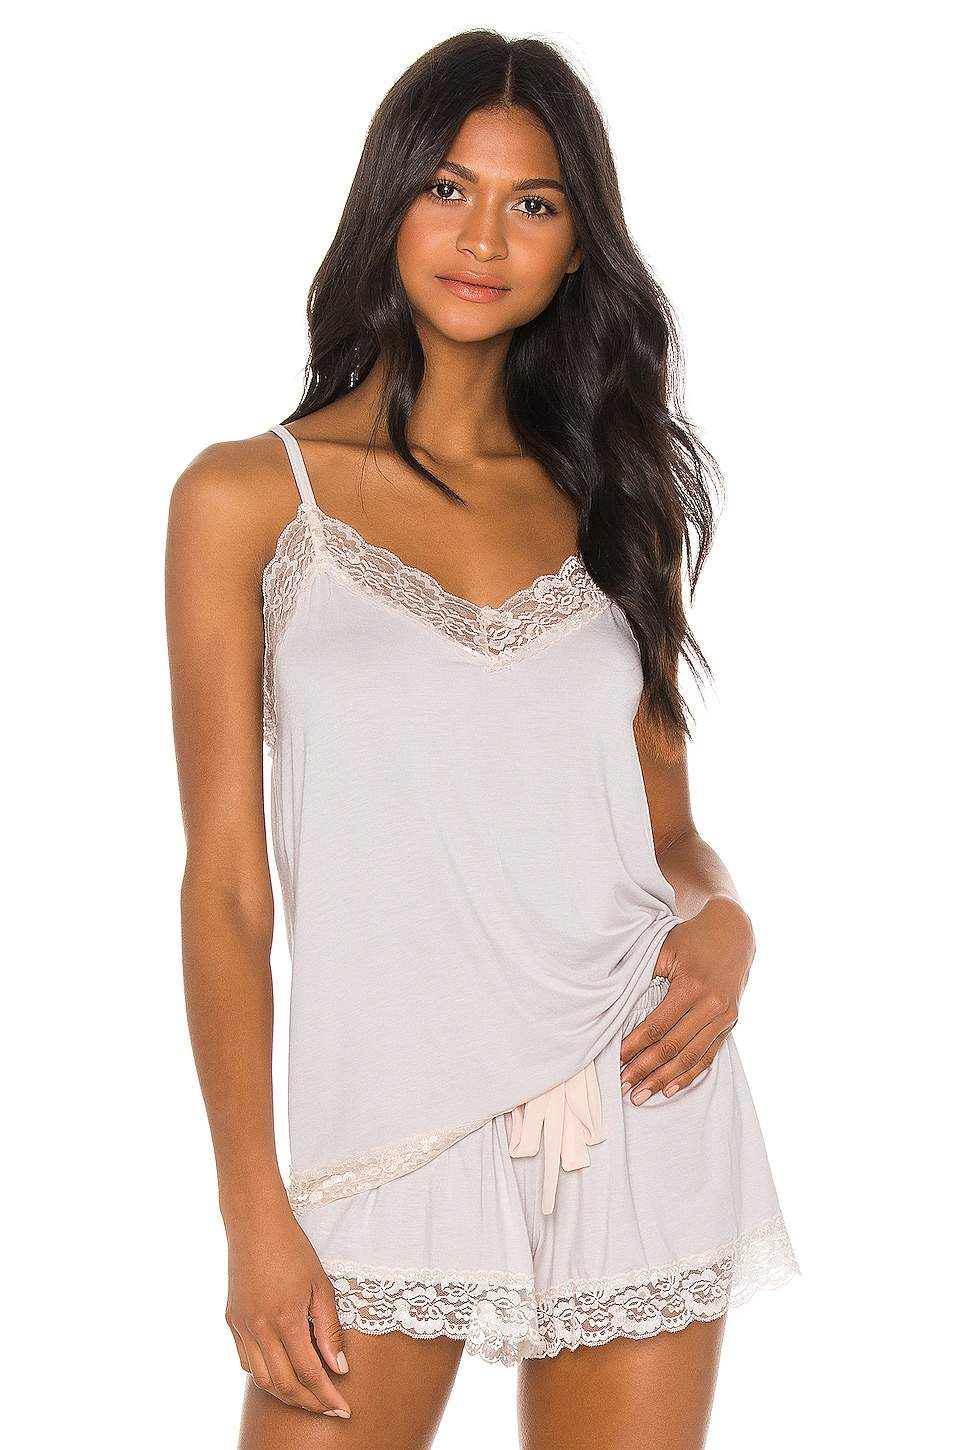 Flora Nikrooz Snuggle Knit Lace Cami in Gray